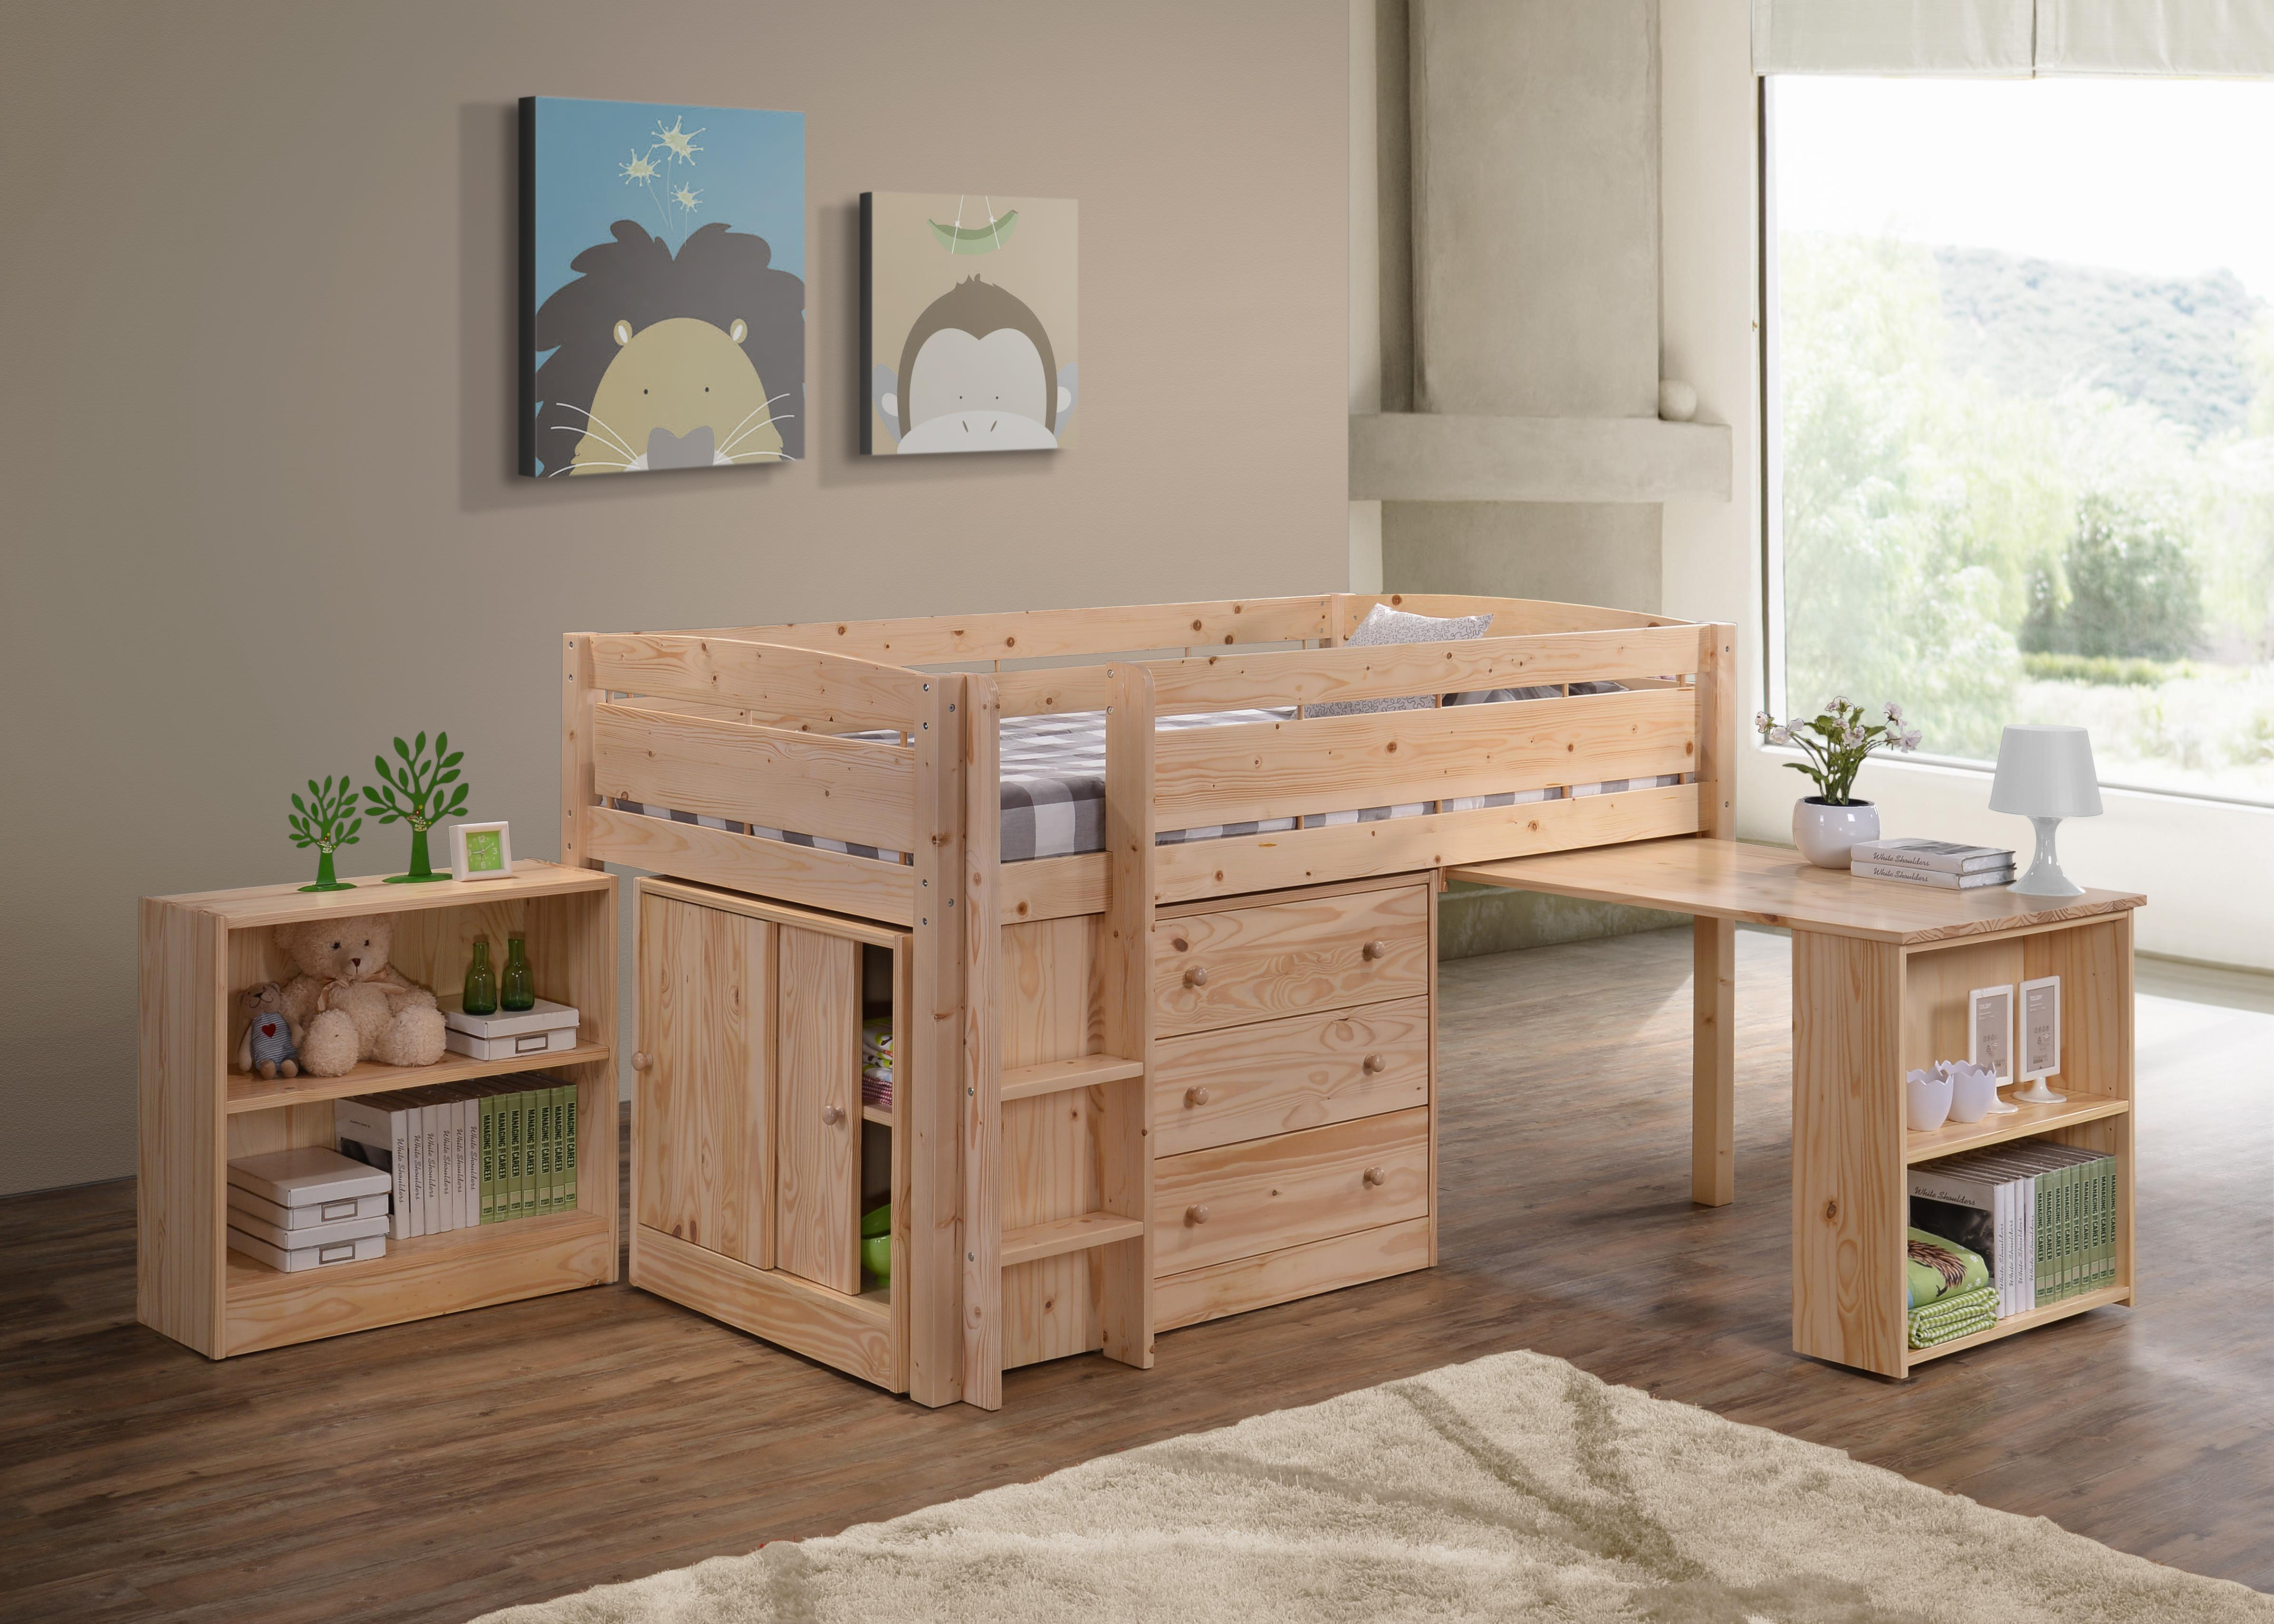 Storkcraft canwood whistler junior loft bed by oj commerce 2131 4 - Canwood whistler ...